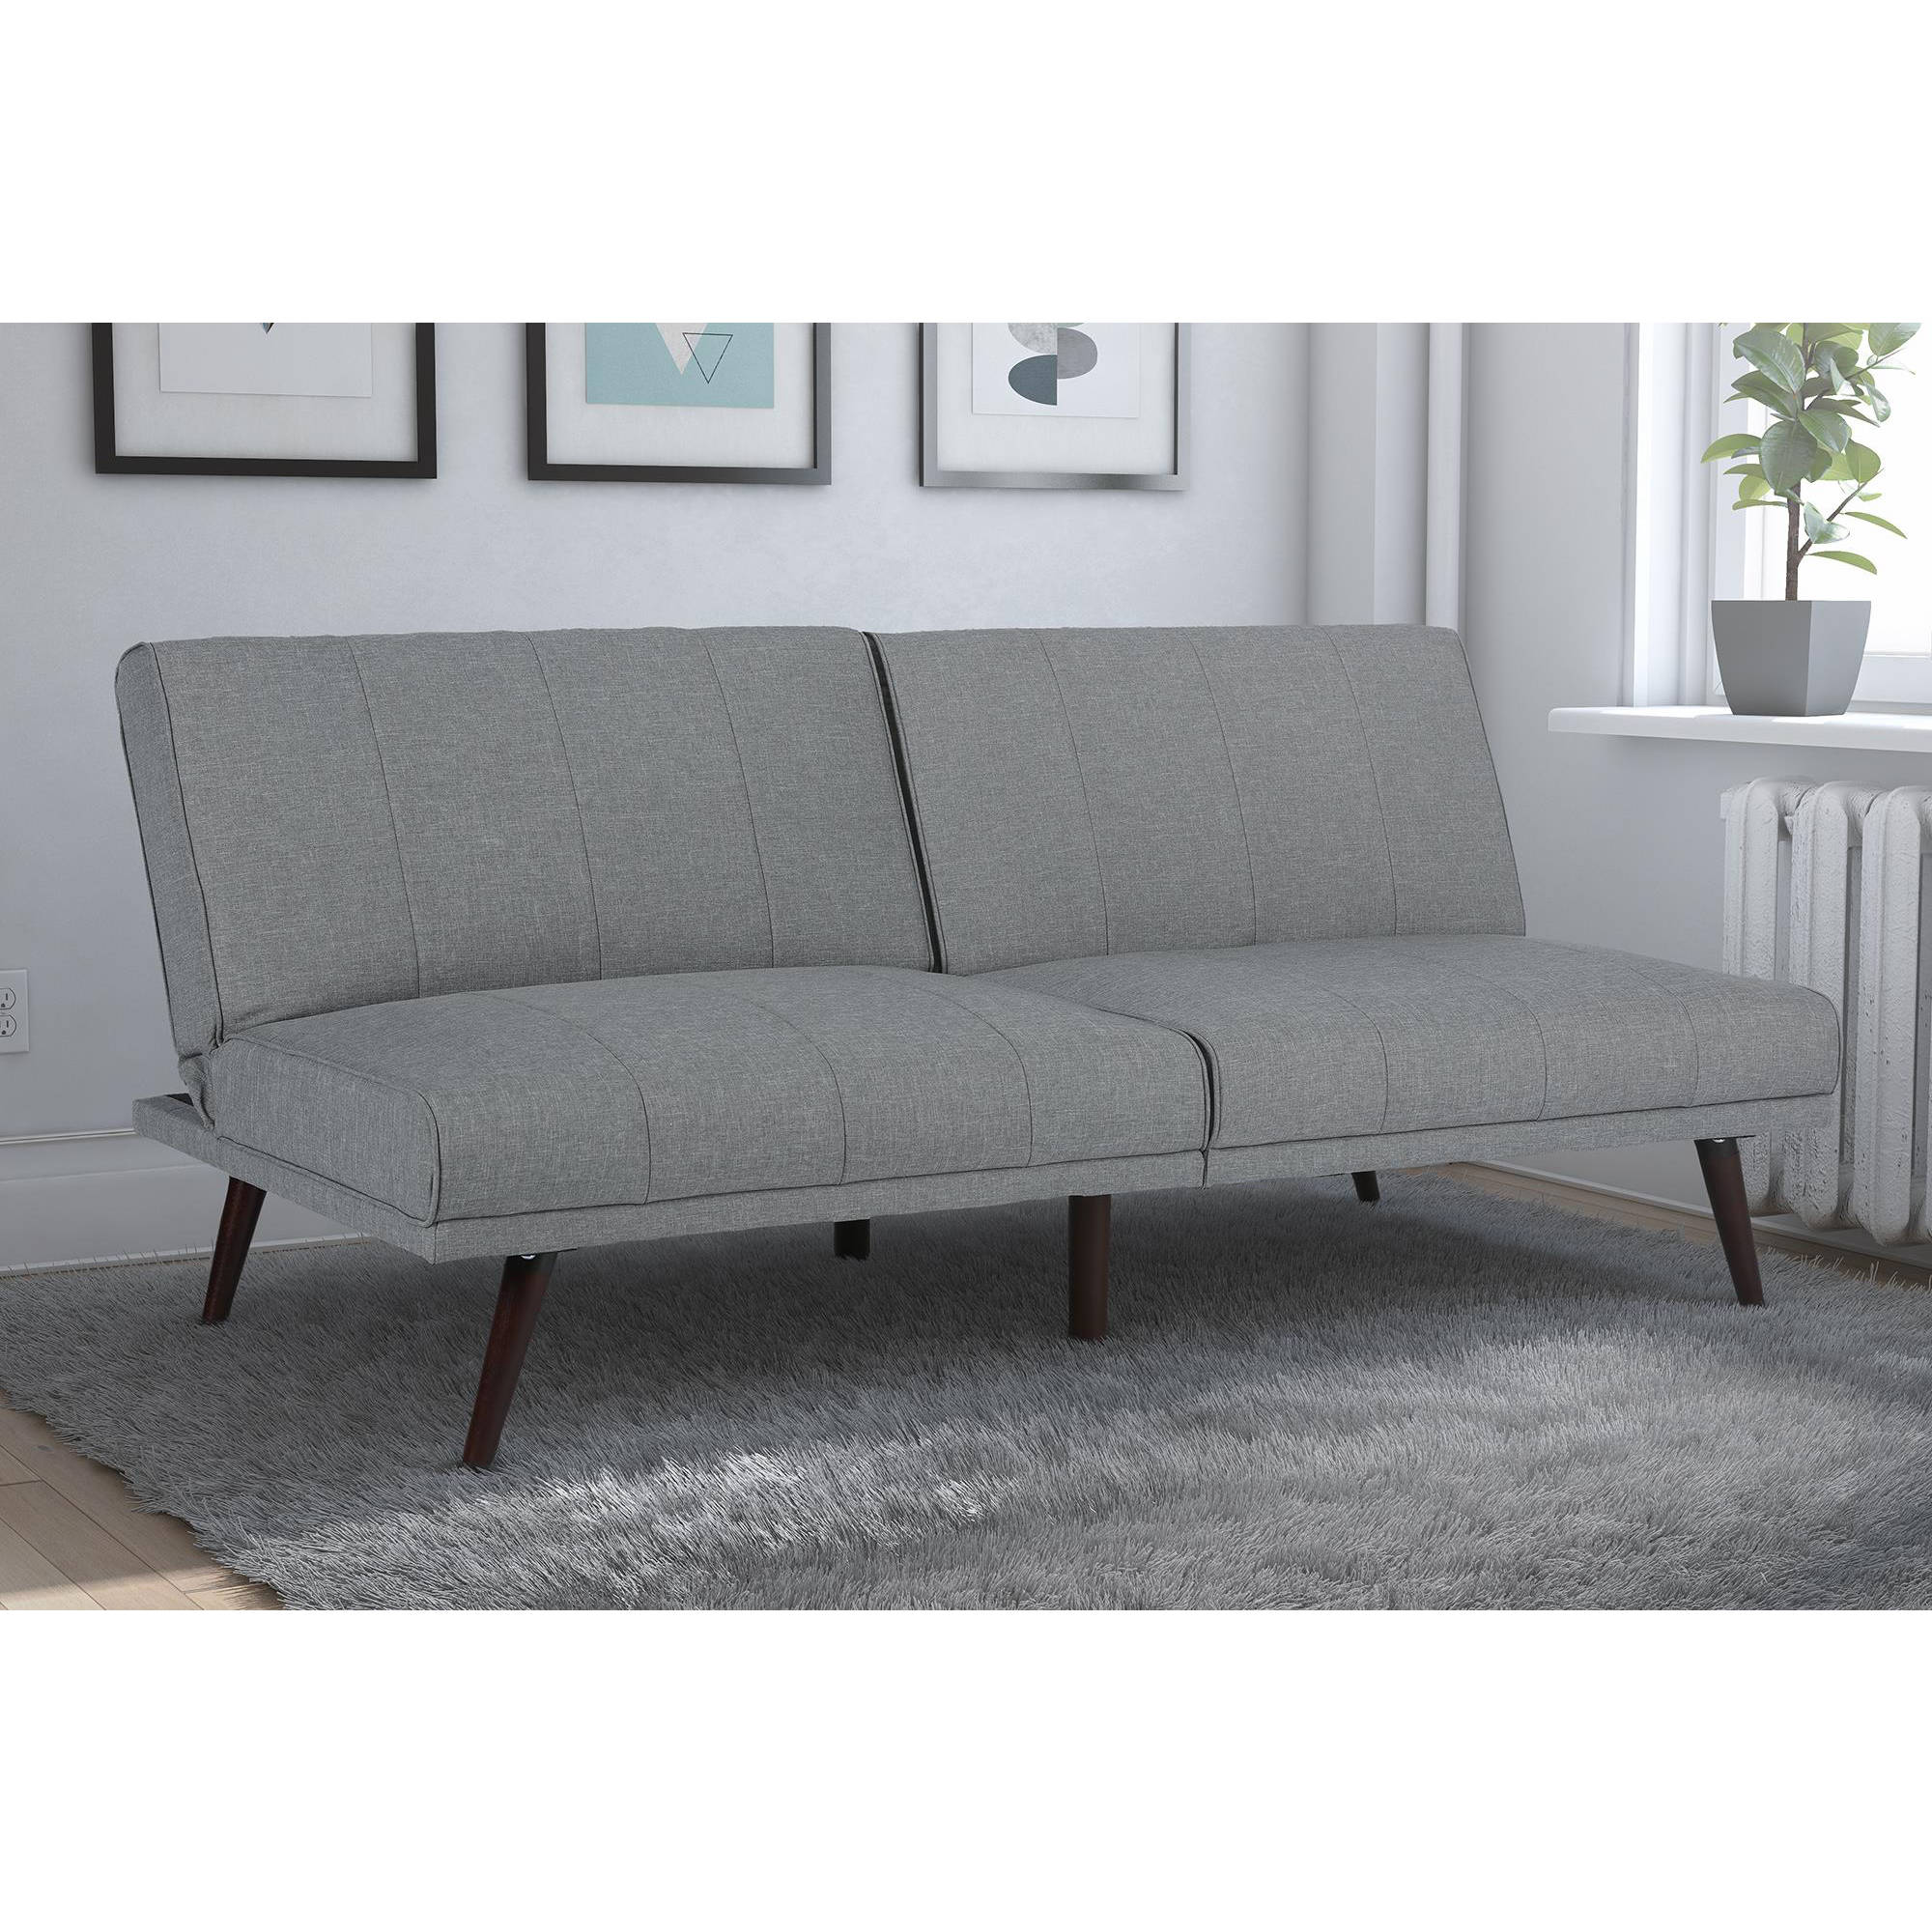 arm walmart futons dhp com aiden metal multiple sturdy colors futon ip frame